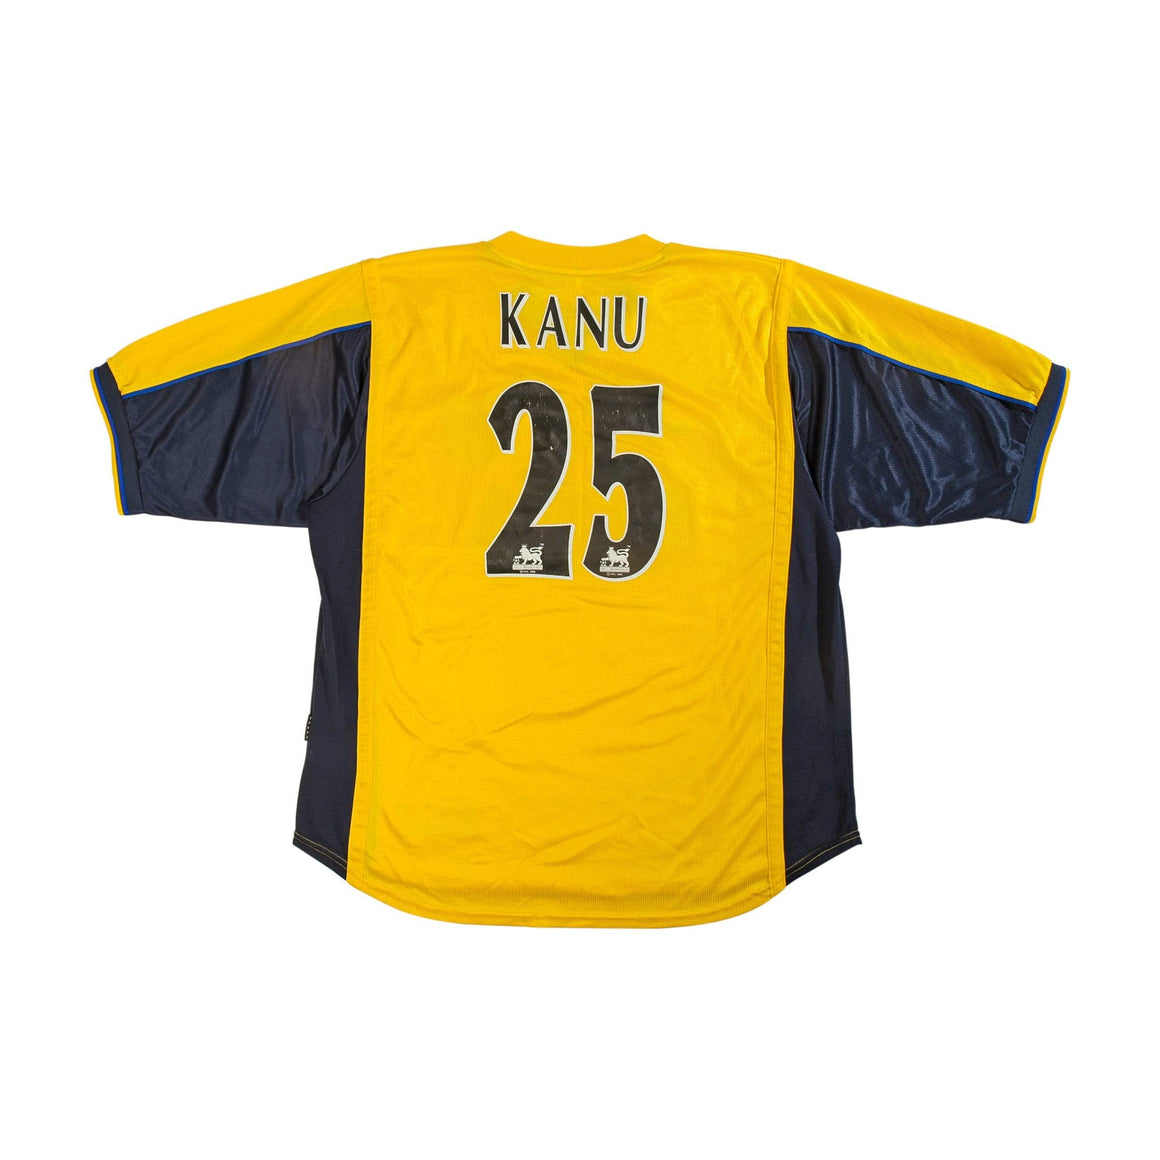 Football Shirt Collective 1999-01 Arsenal away shirt XL Kanu 25 (Excellent)